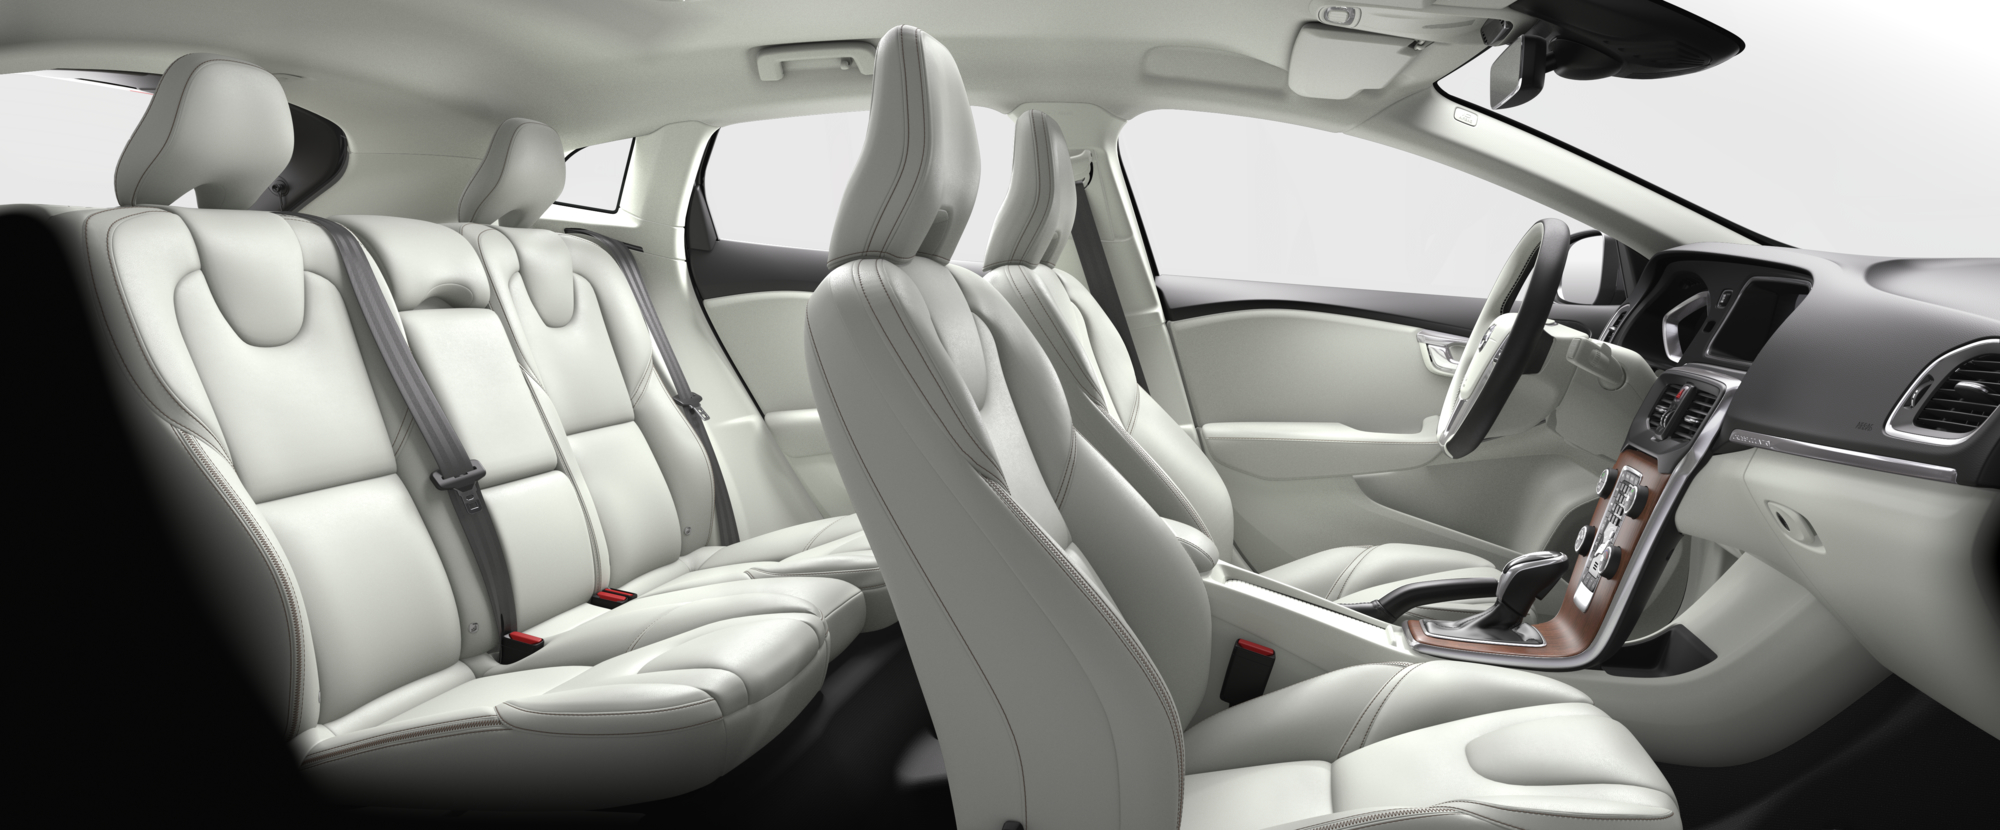 Interior shot of the Volvo V40 Cross Country with Blond Leather Seats